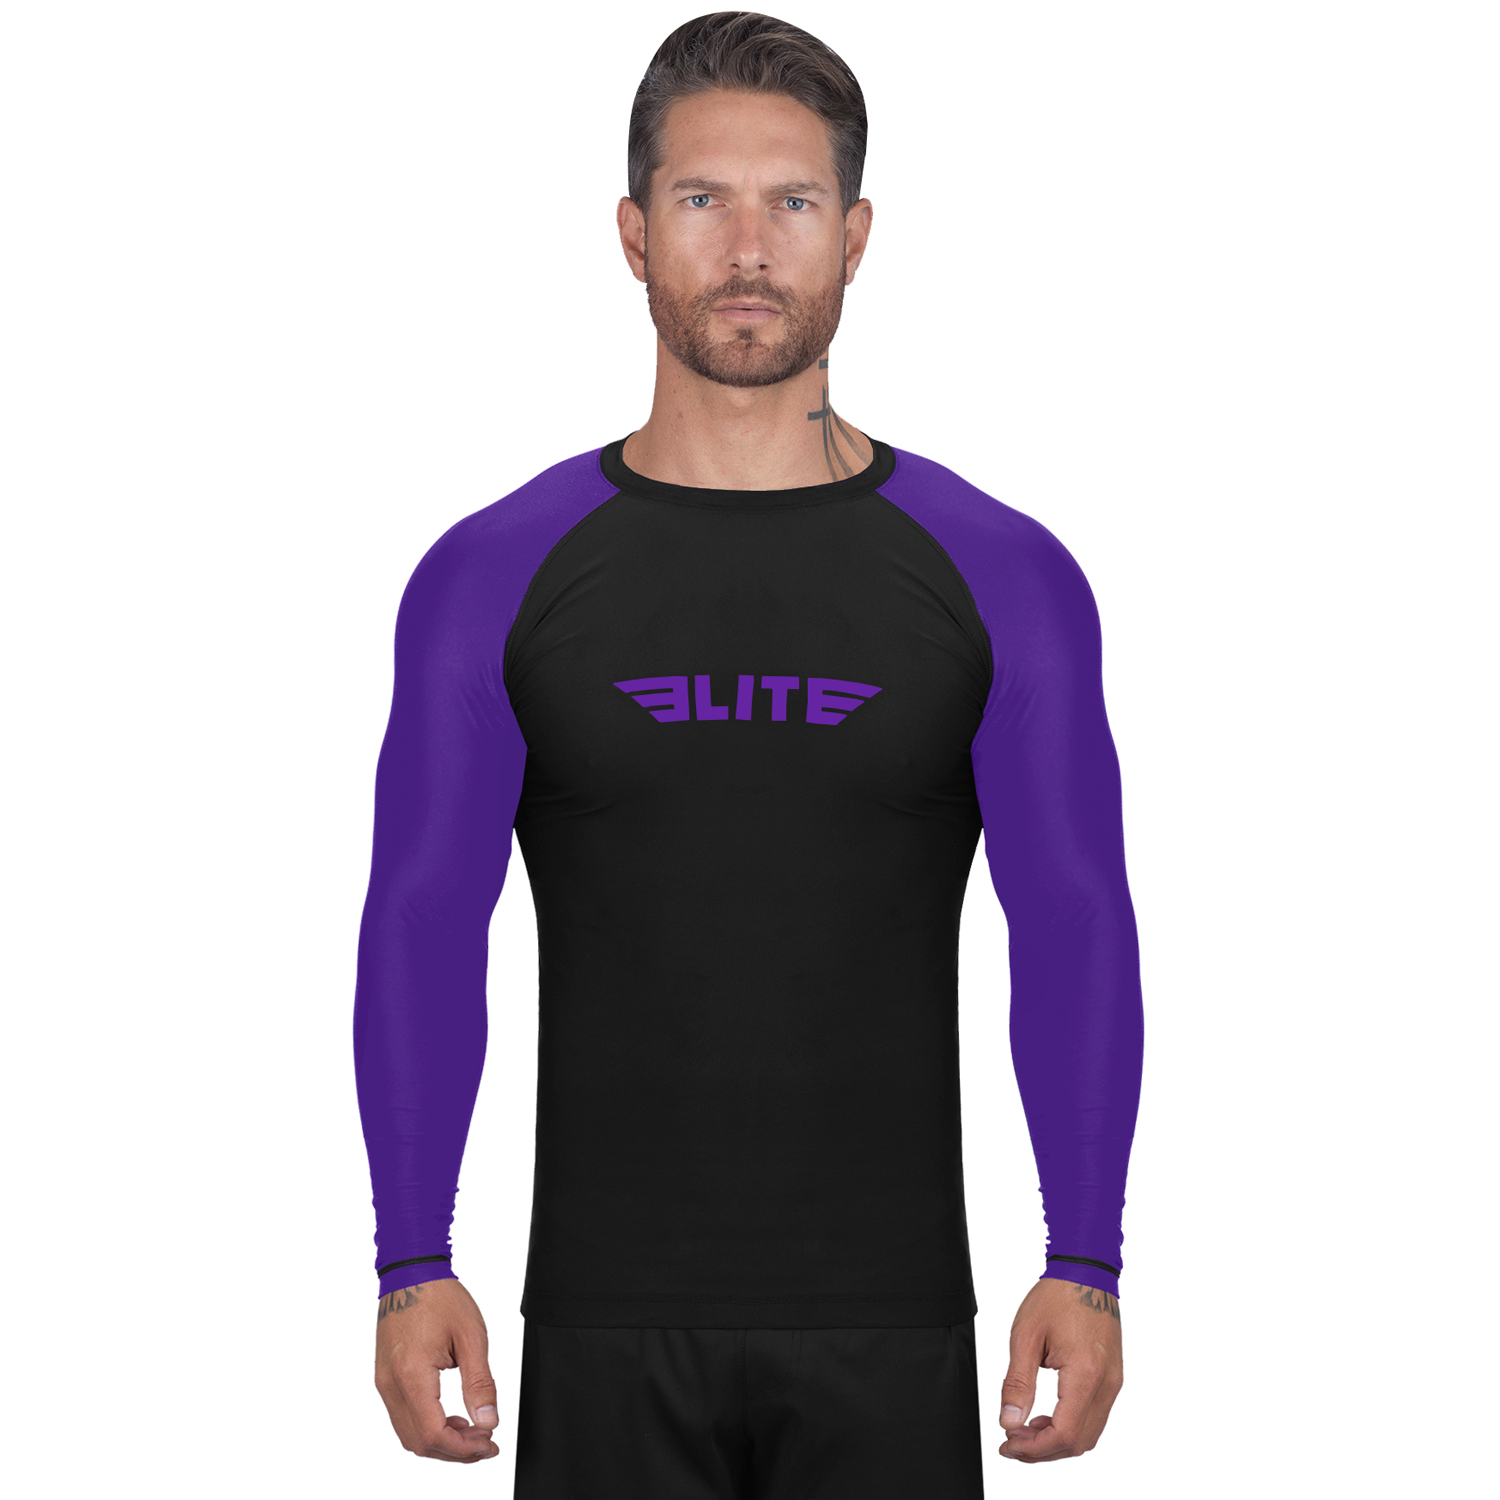 Elite Sports Standard Black/Purple Long Sleeve Training Rash Guard